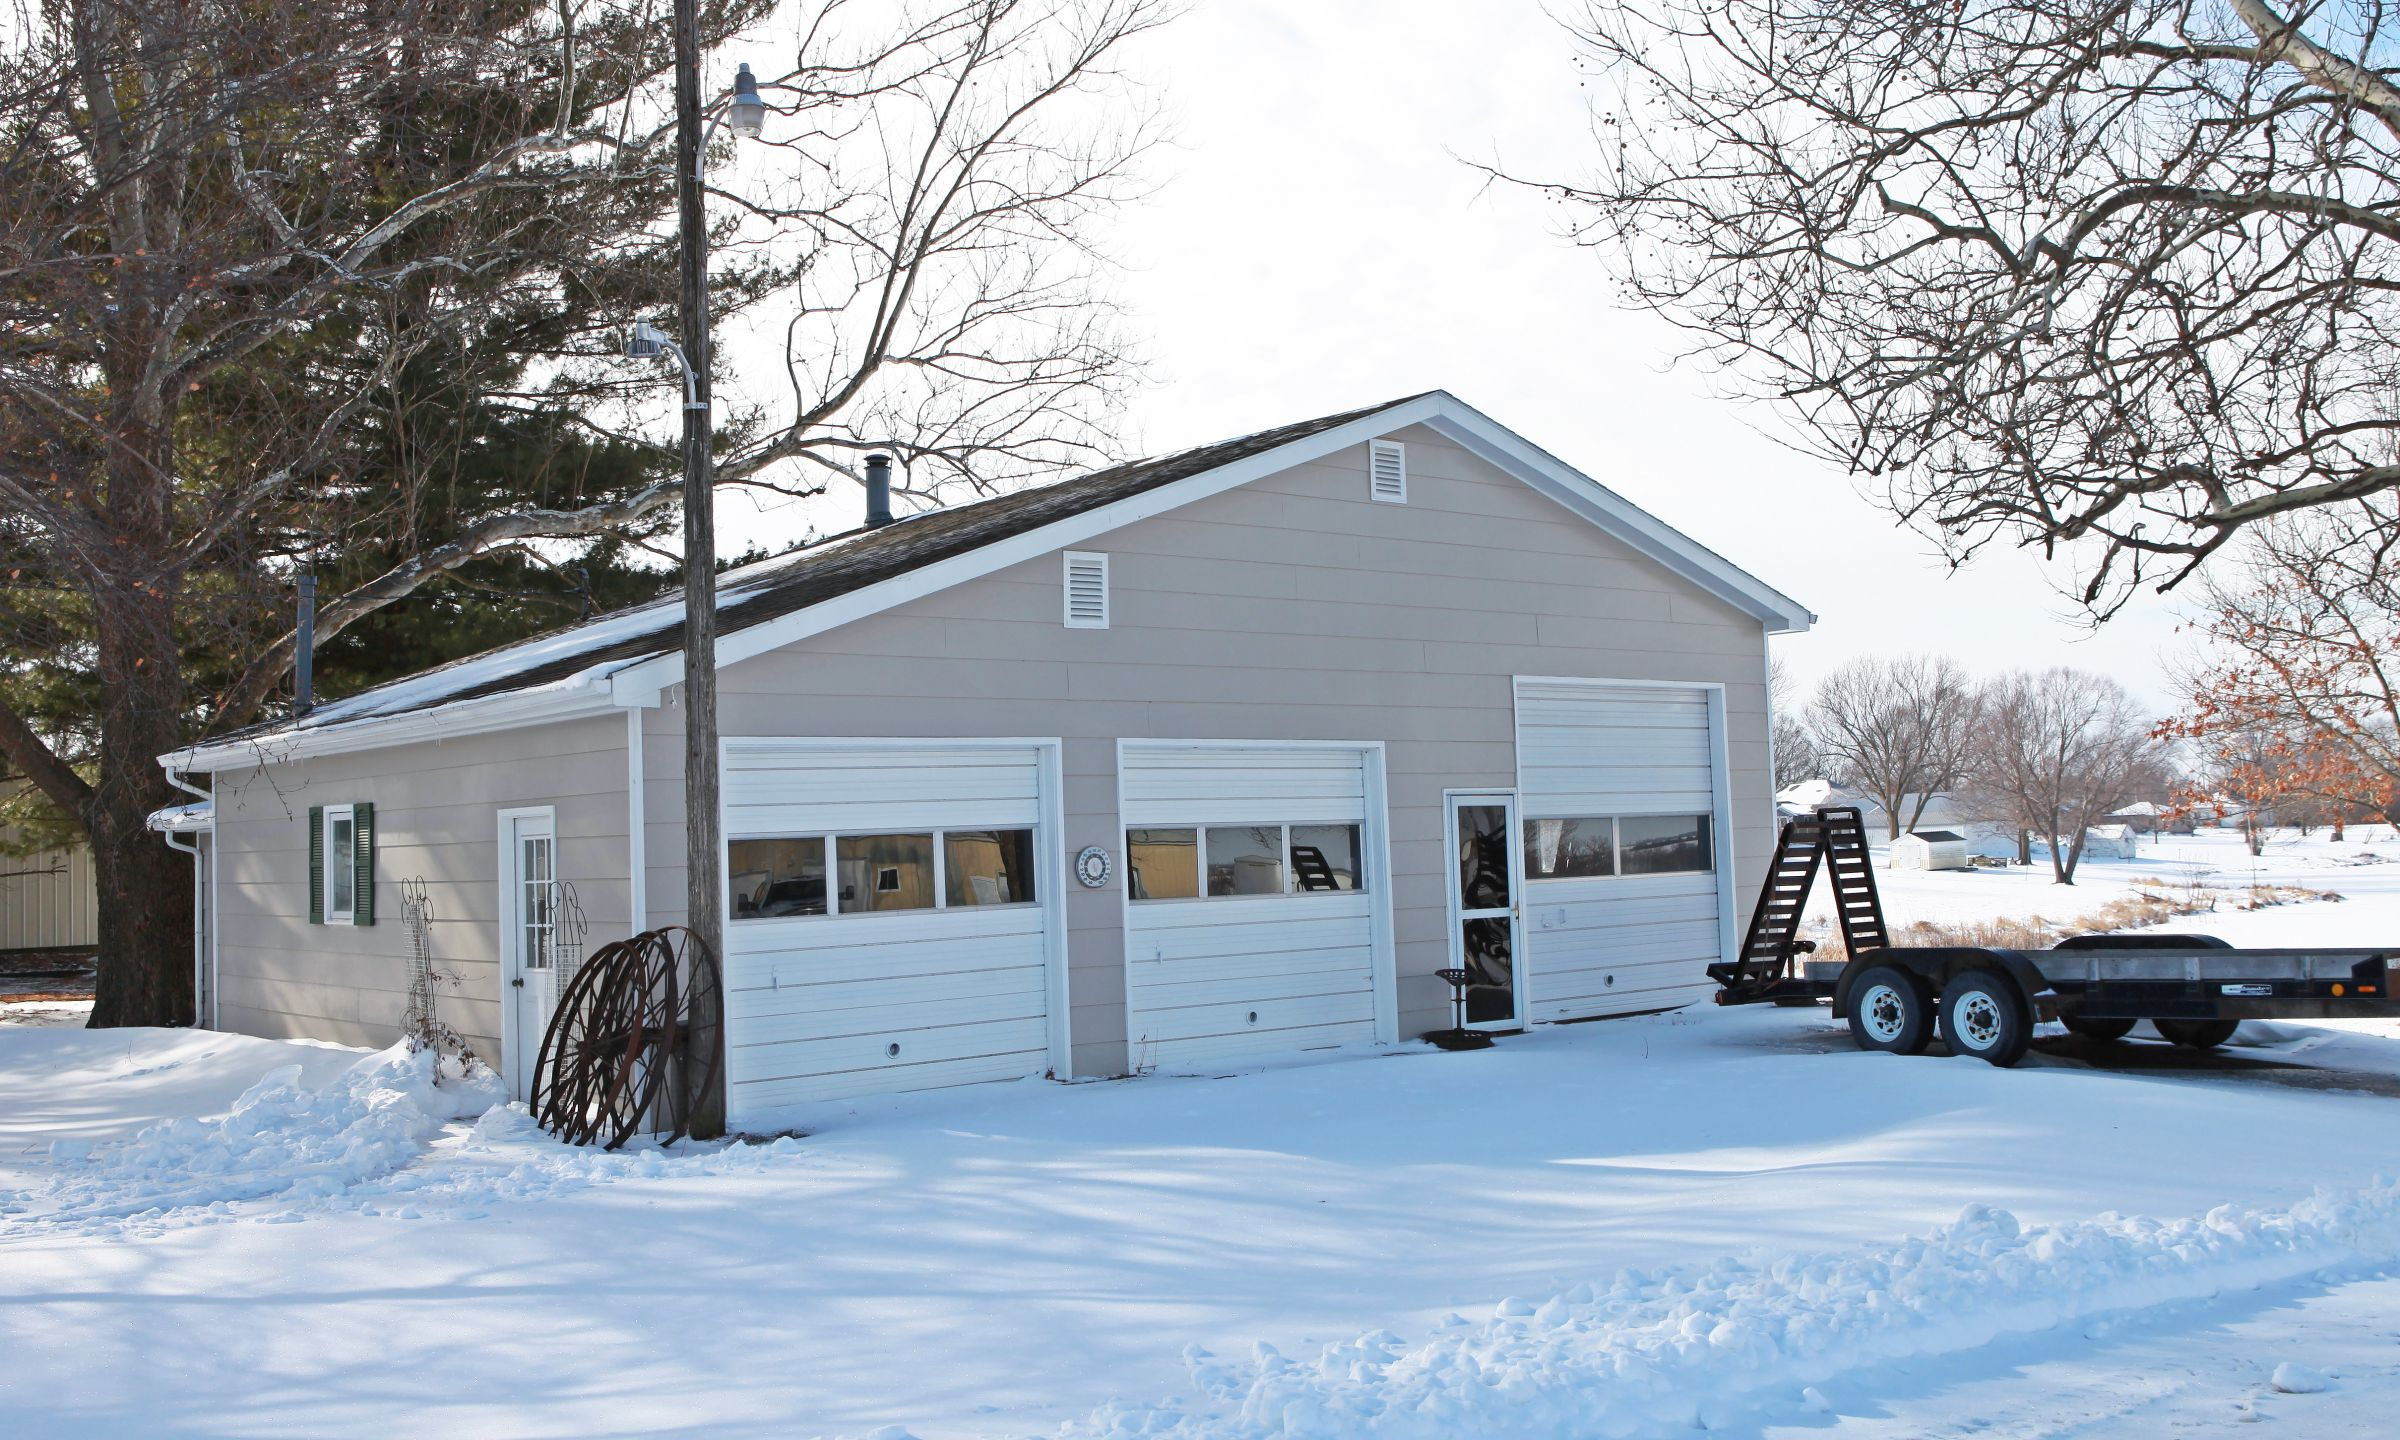 residential-lucas-county-iowa-0-acres-listing-number-15321-1-2021-01-18-210423.jpg